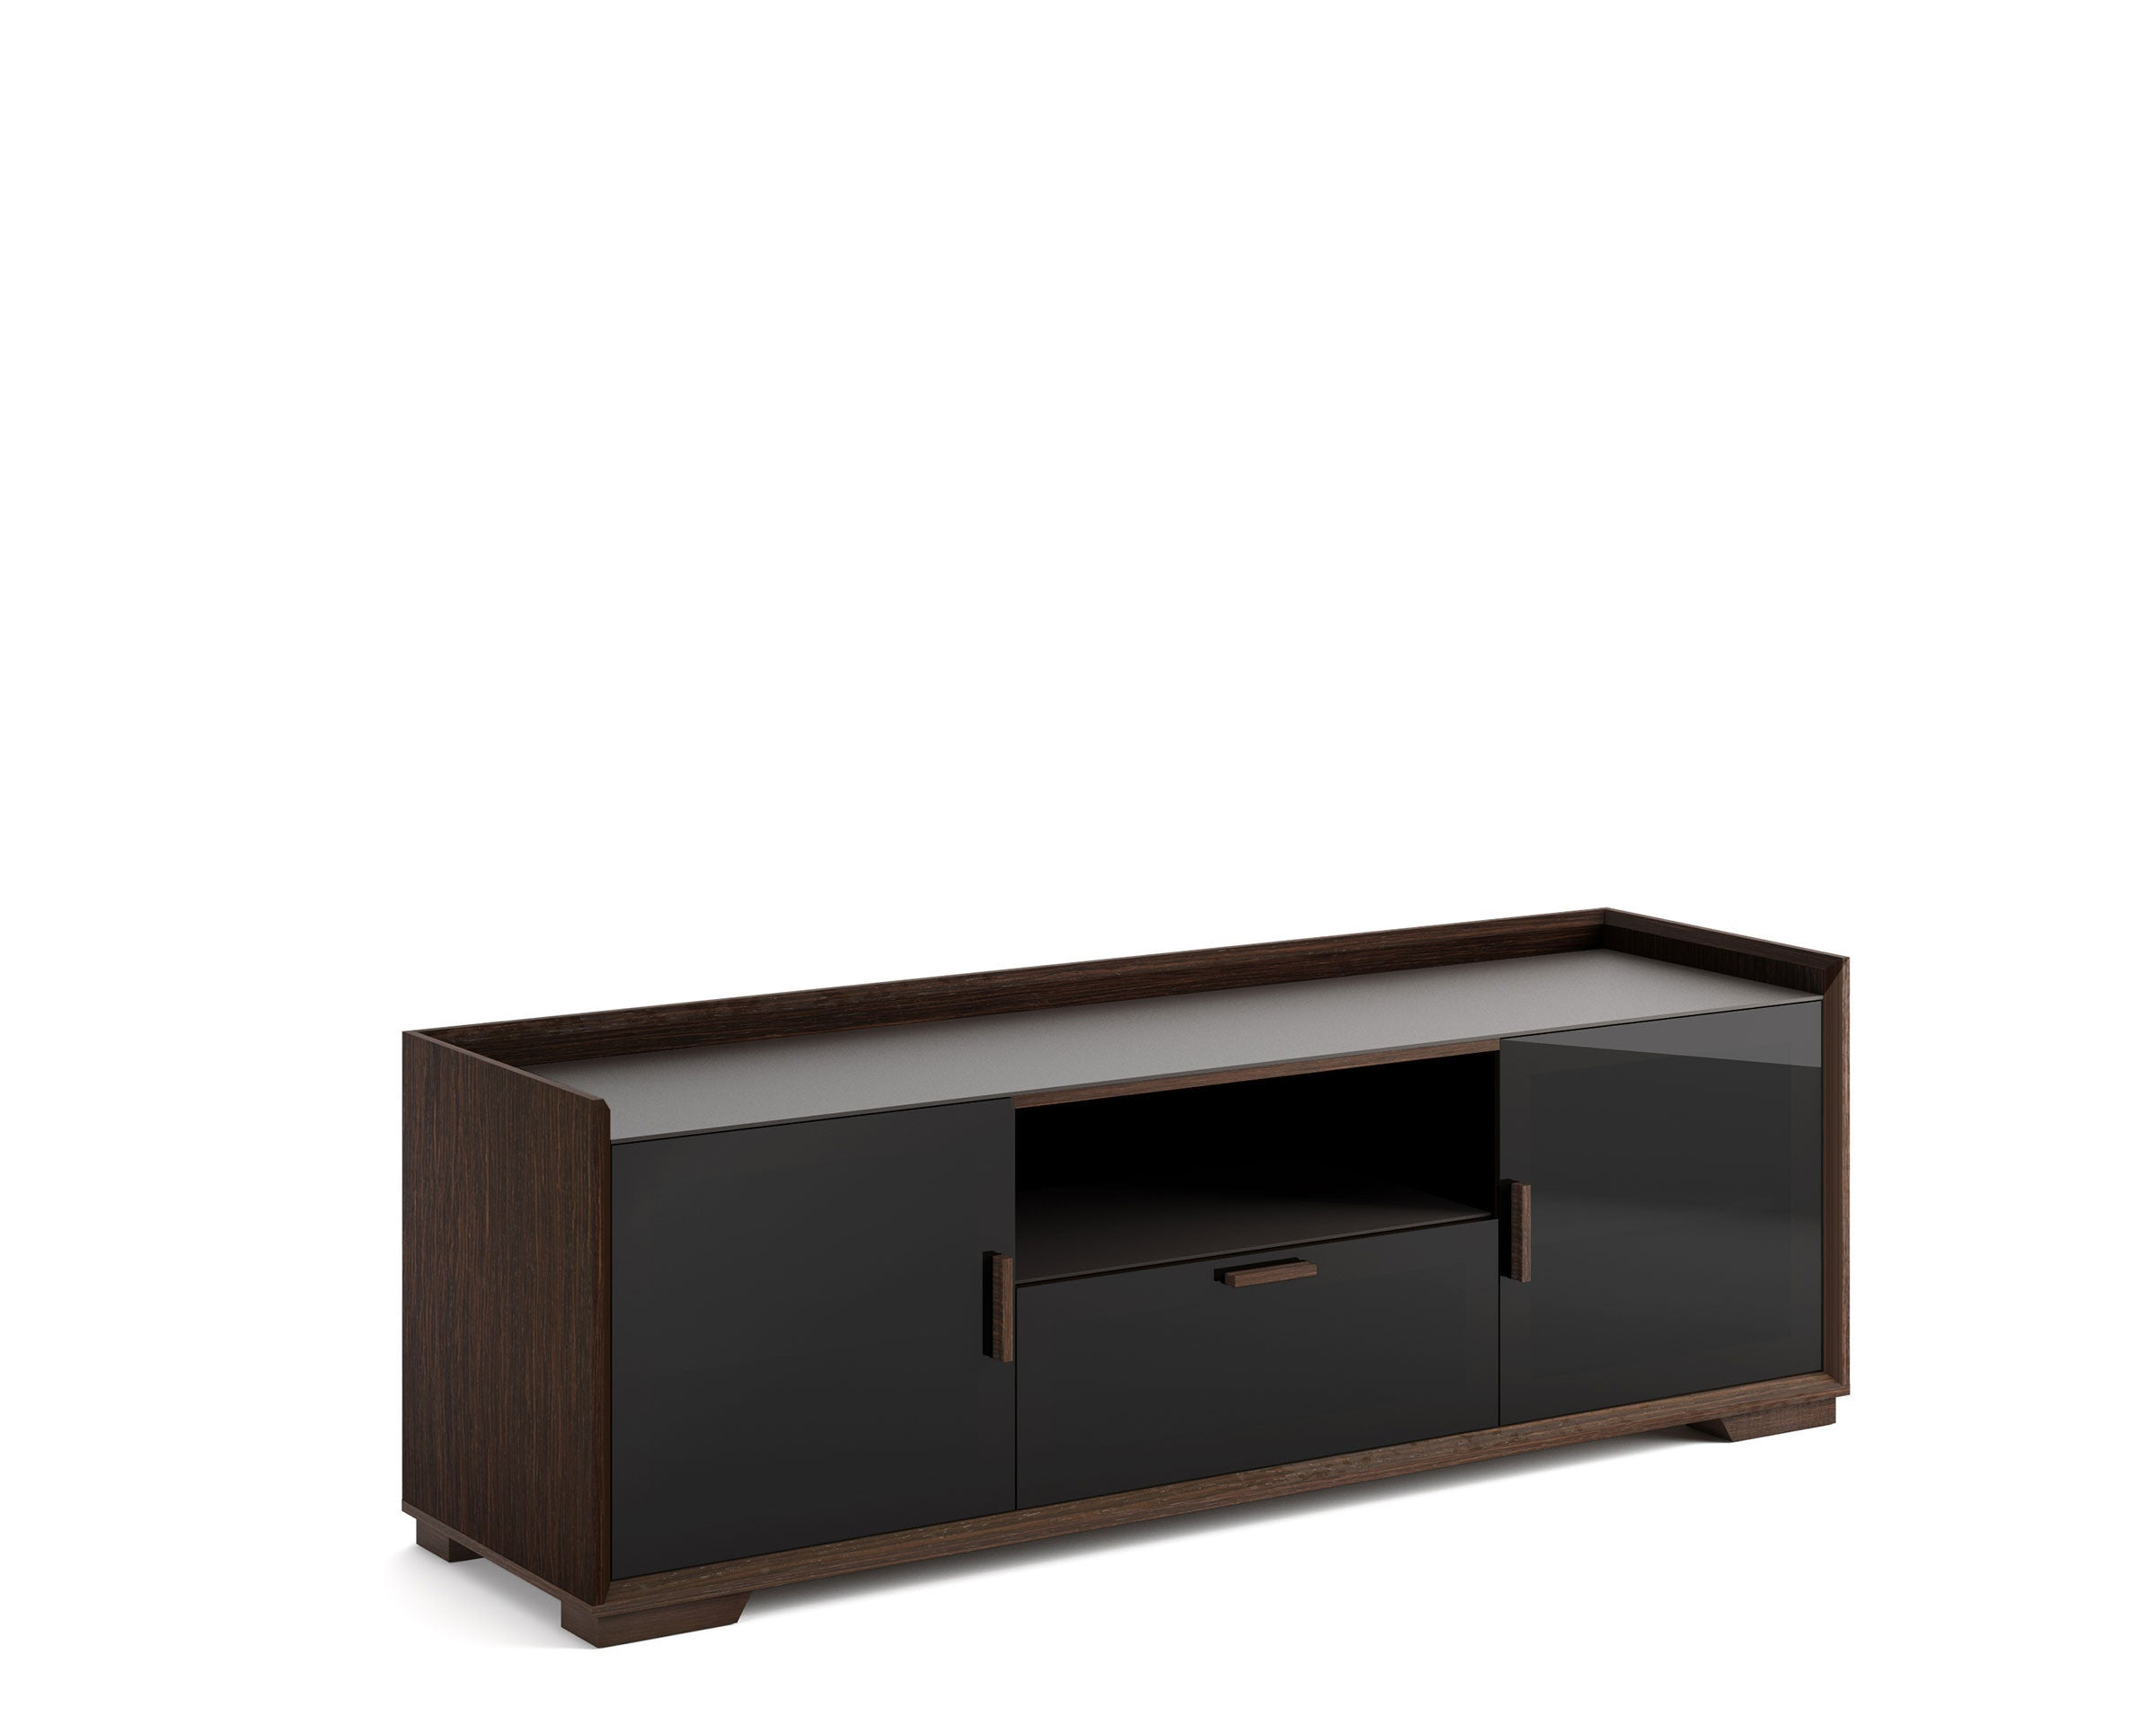 Sdav2 72 Tv Stand In Wenge Espresso With Black Glass